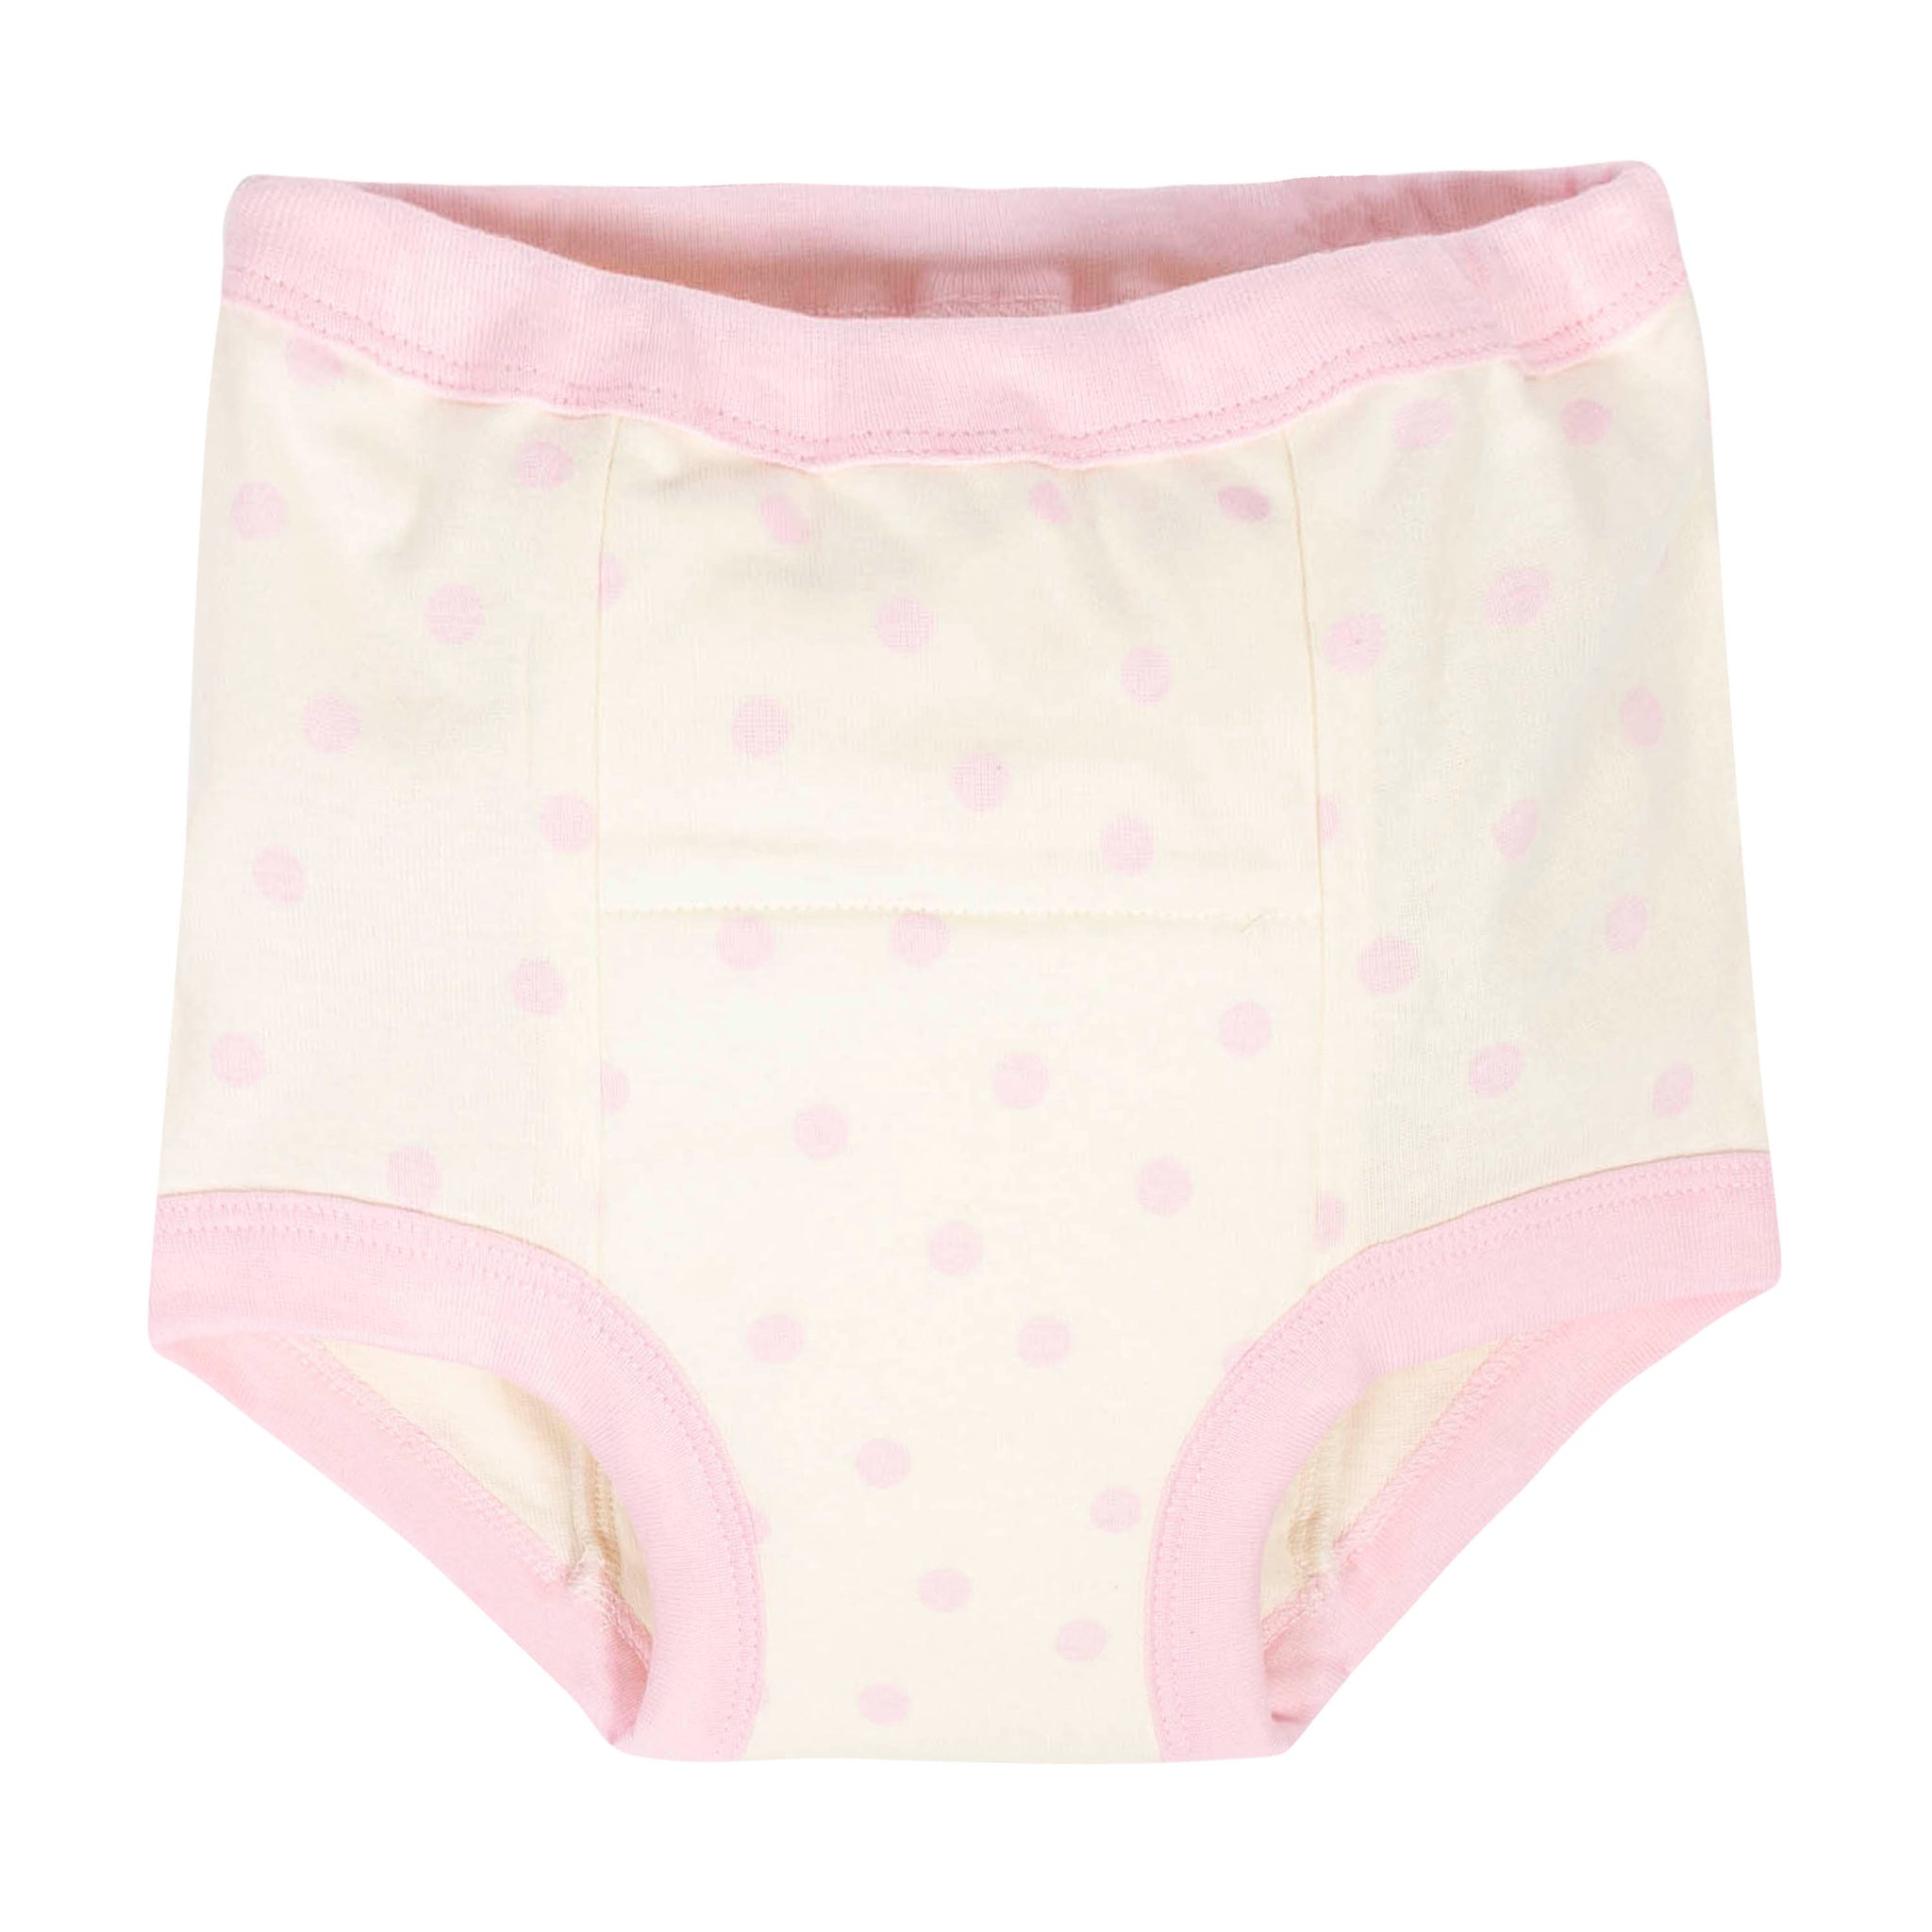 4-Pack Girls Bunny Training Pants-Gerber Childrenswear Wholesale